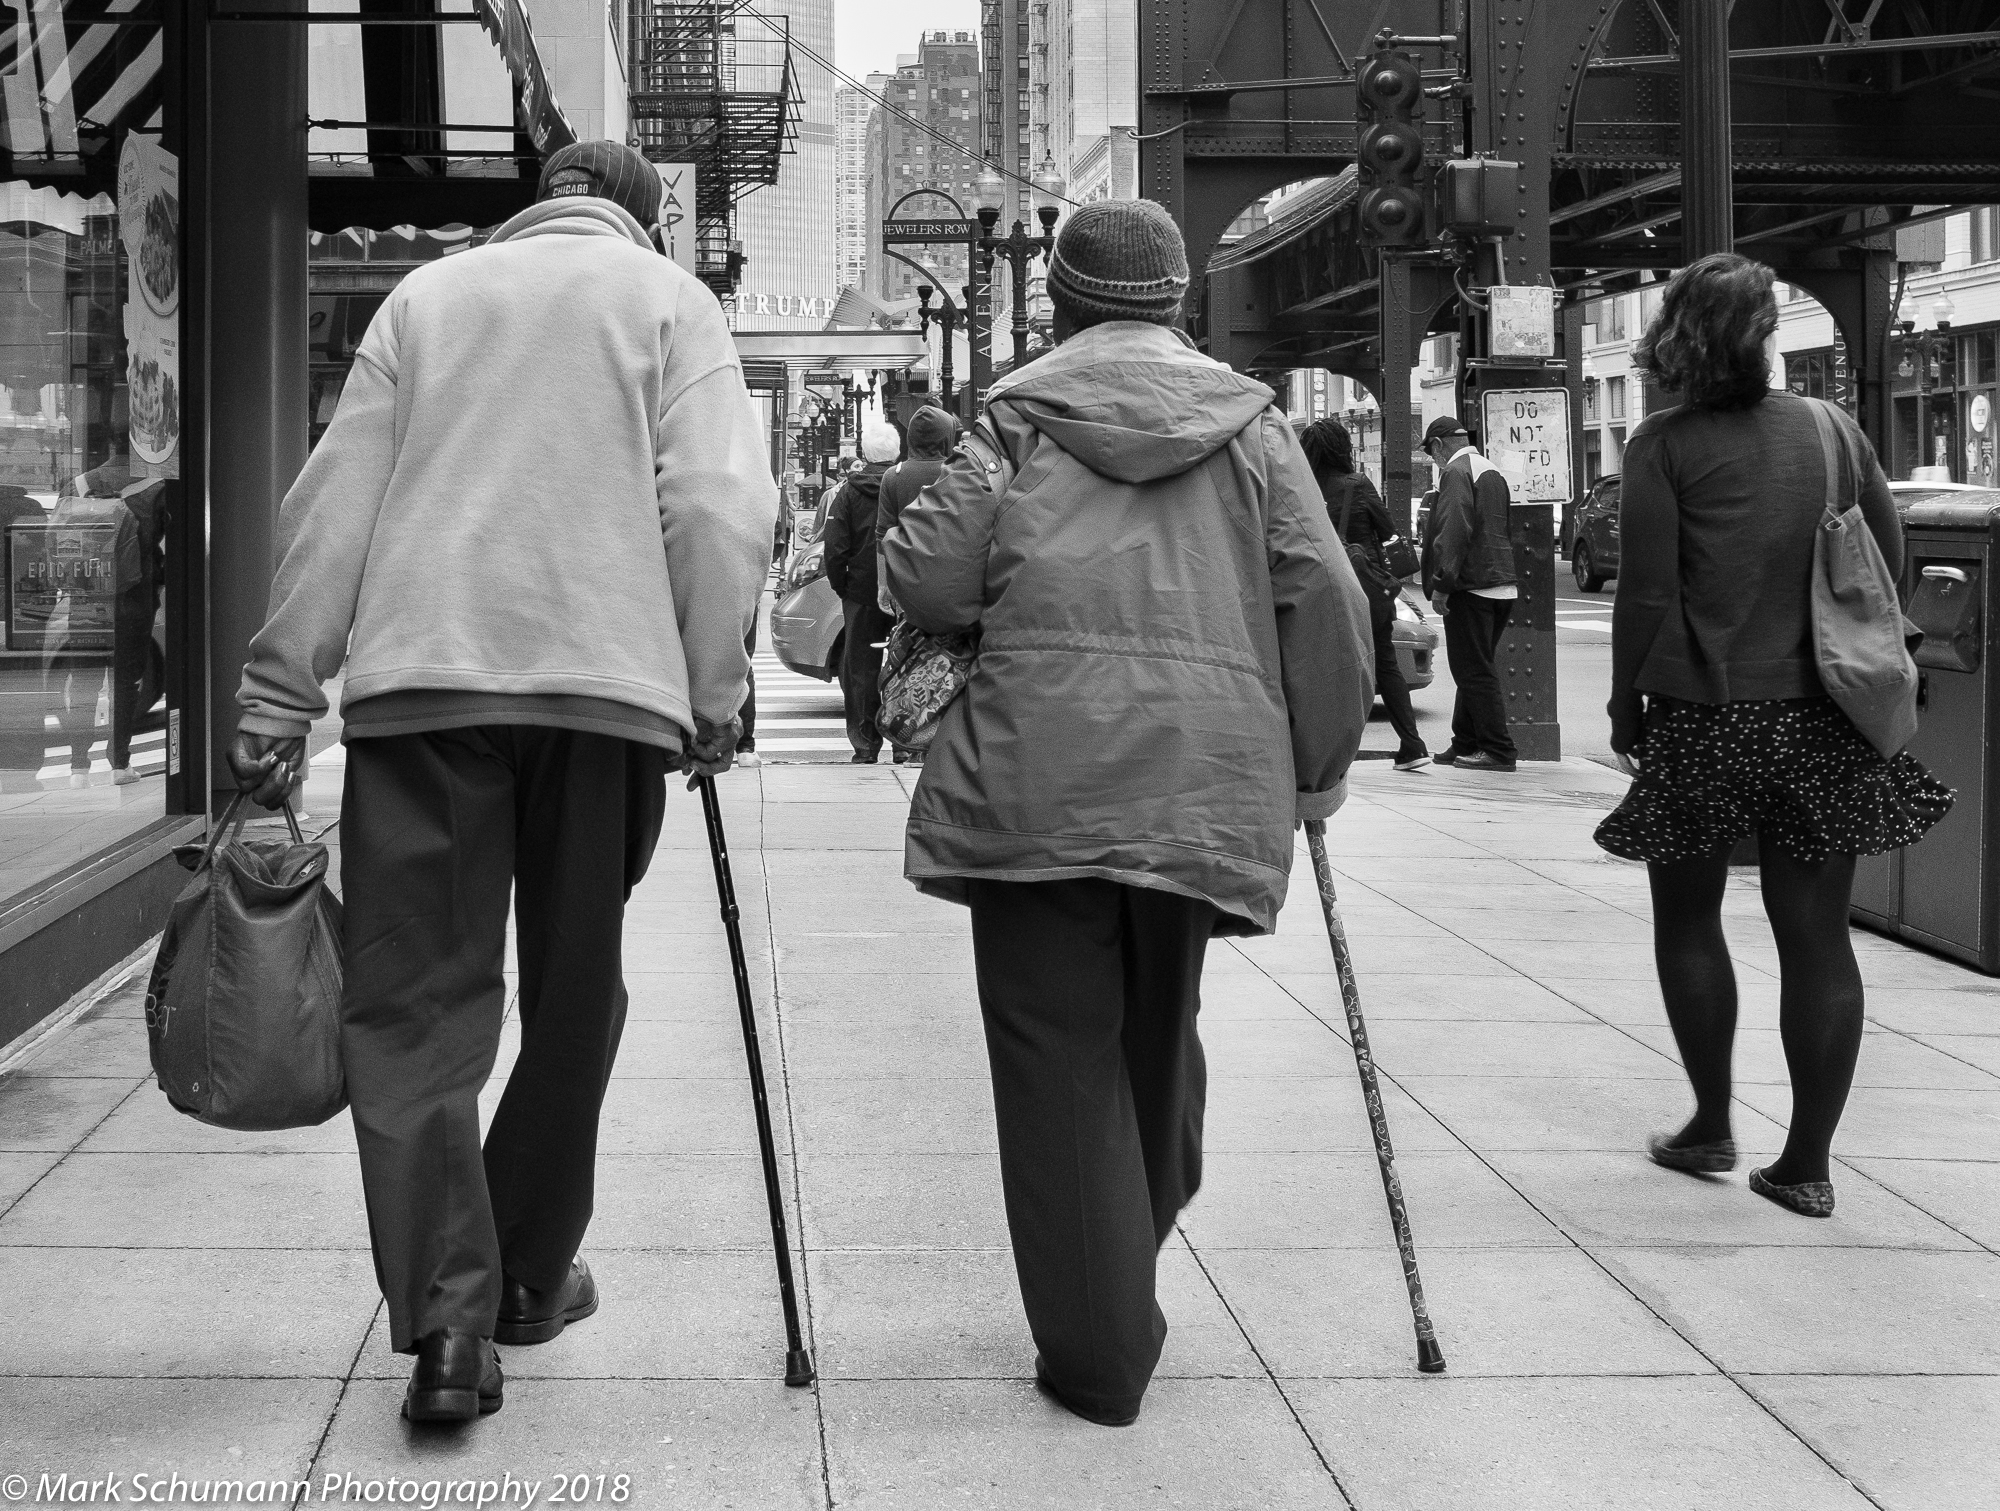 Street Photography_Chicago_Walking Together_113018.jpg